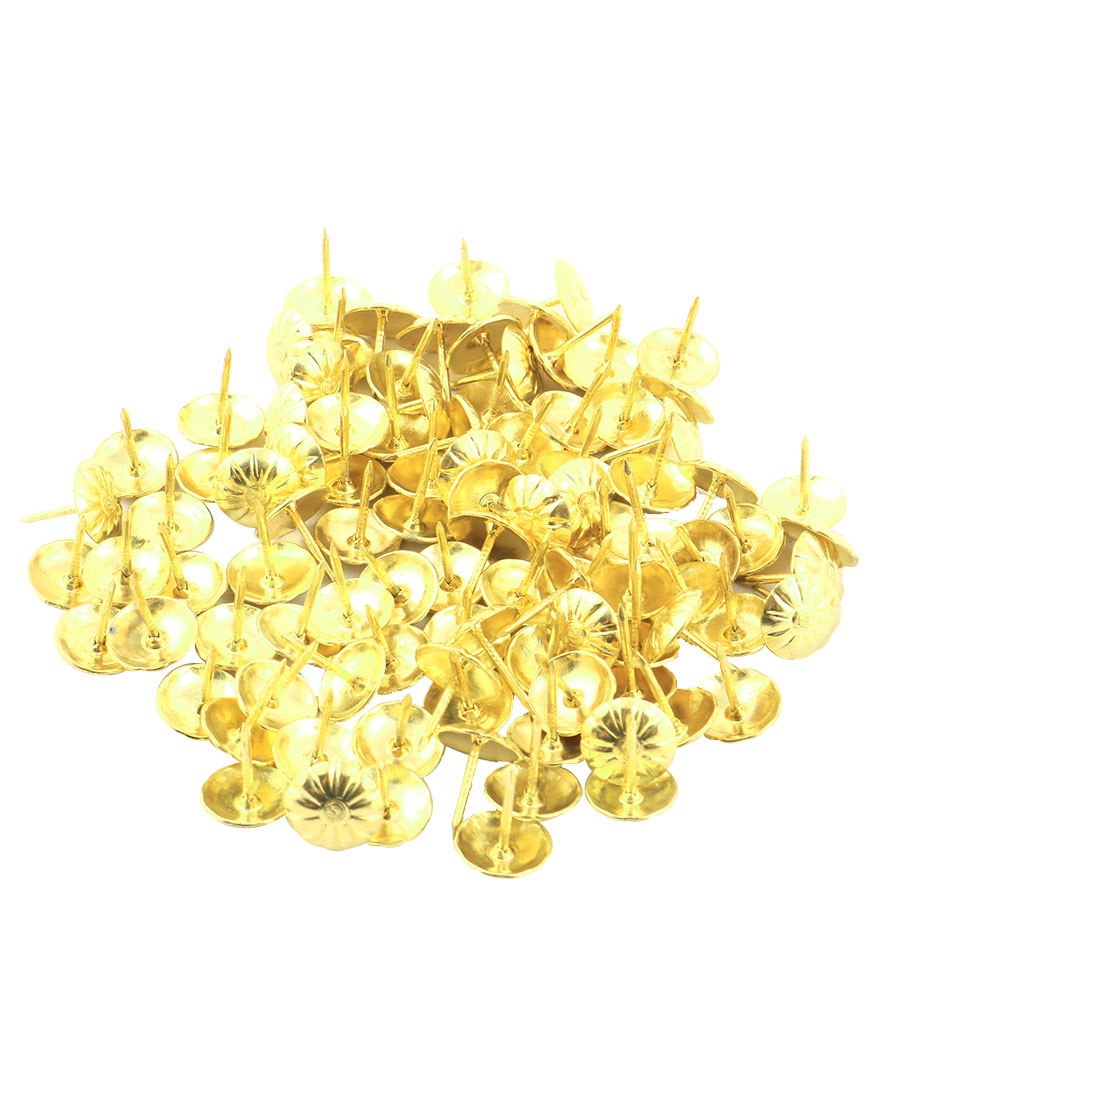 Furniture Flower Pattern Upholstery Thump Tack Nail Decor Gold Tone 11 x 13mm 100pcs